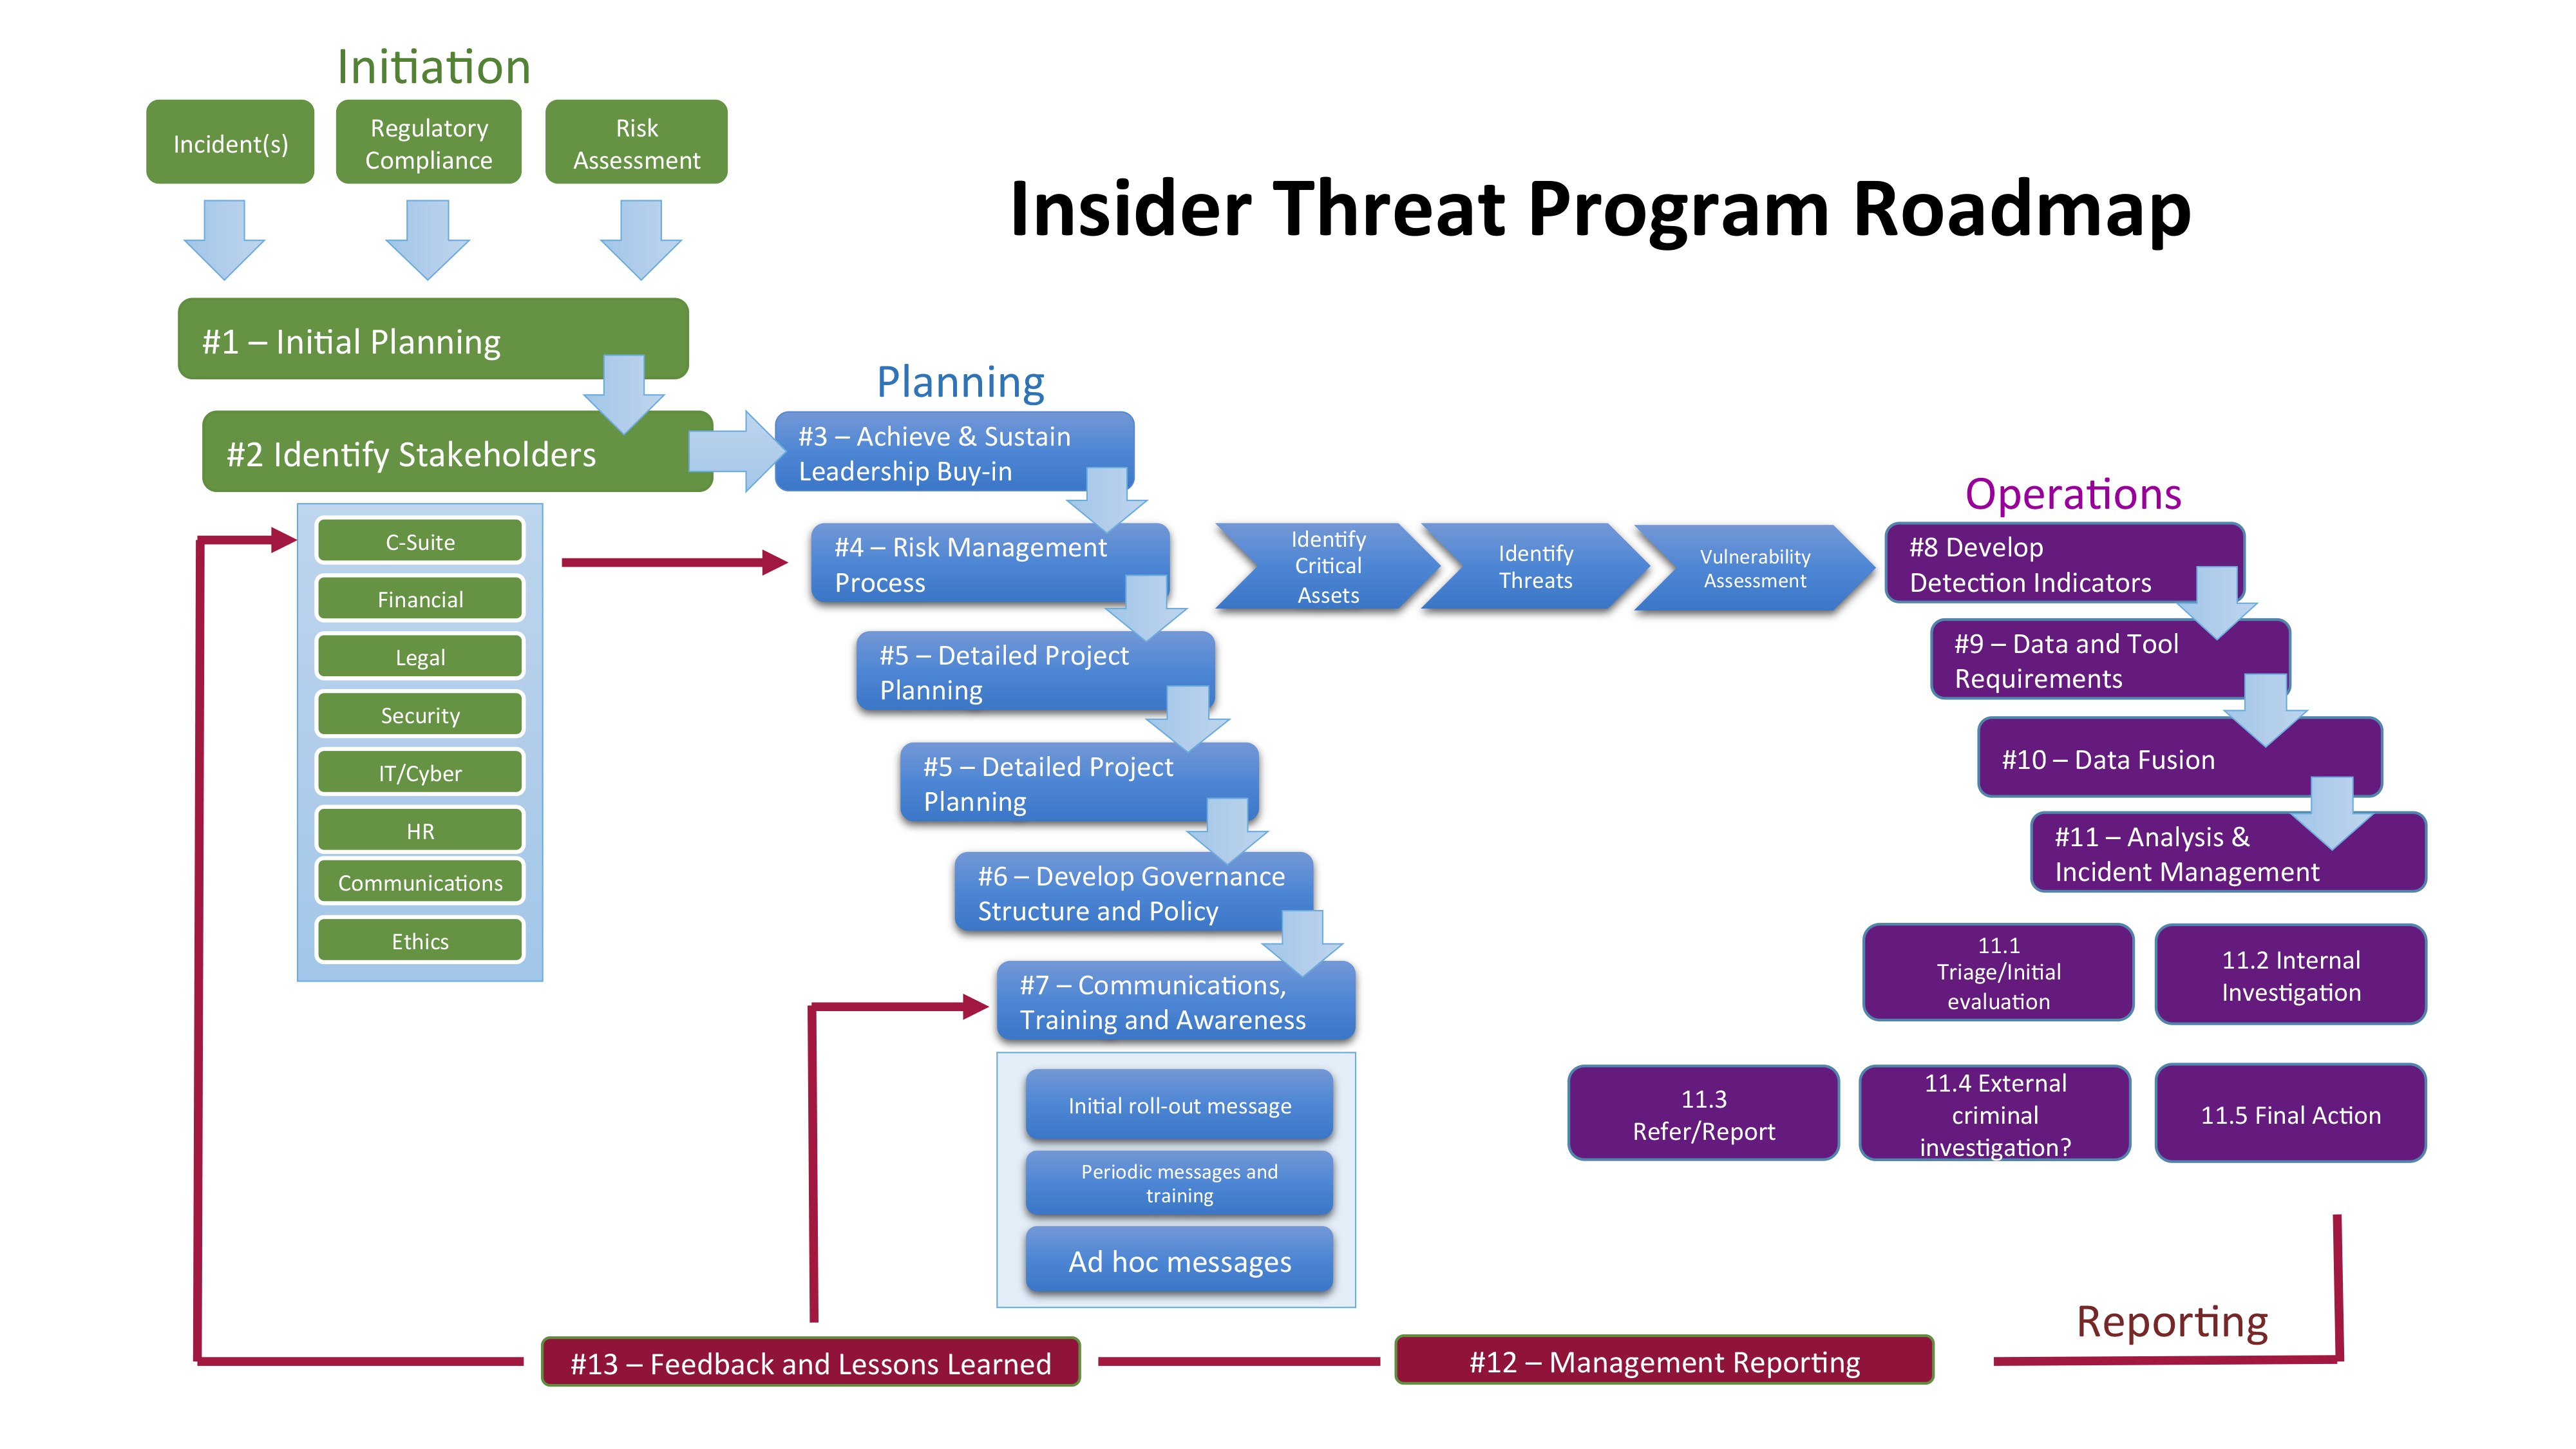 Insider threat program insa insider threat program roadmap click here for full image ccuart Image collections